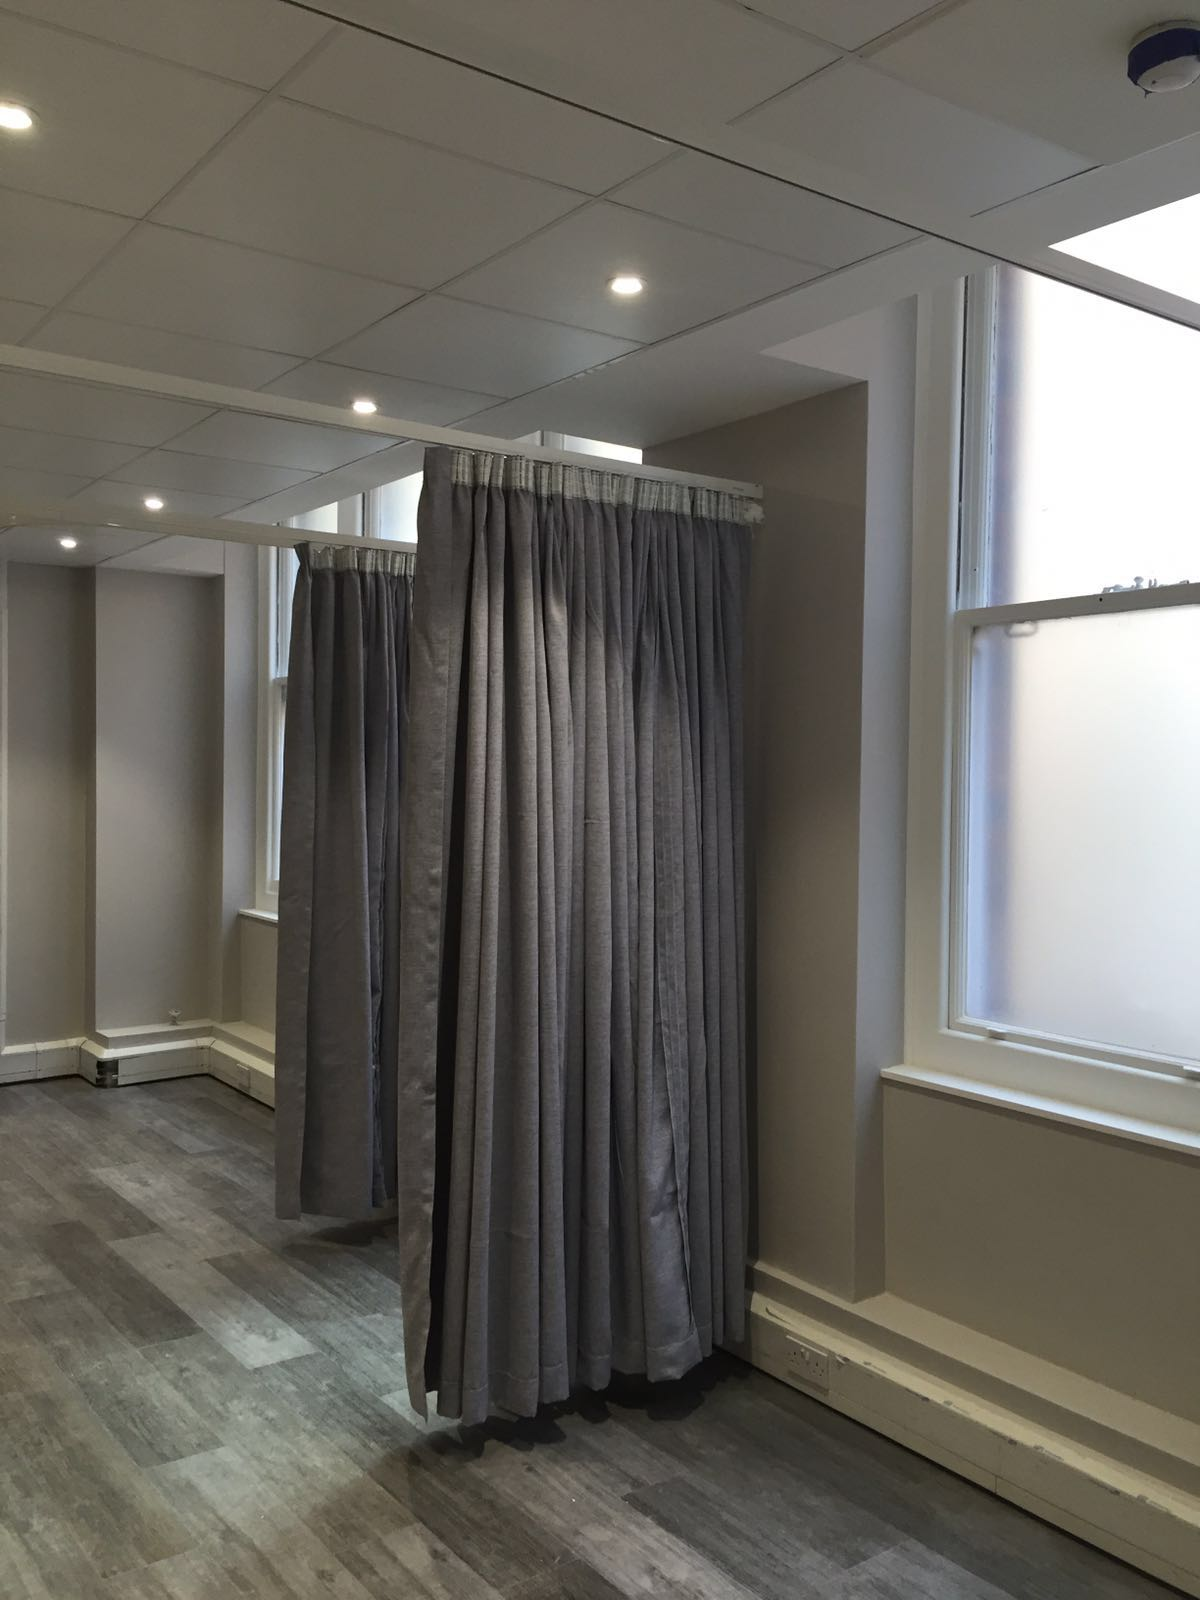 Cubicle Curtains & NHS Certified Tracks For Beauty Rooms